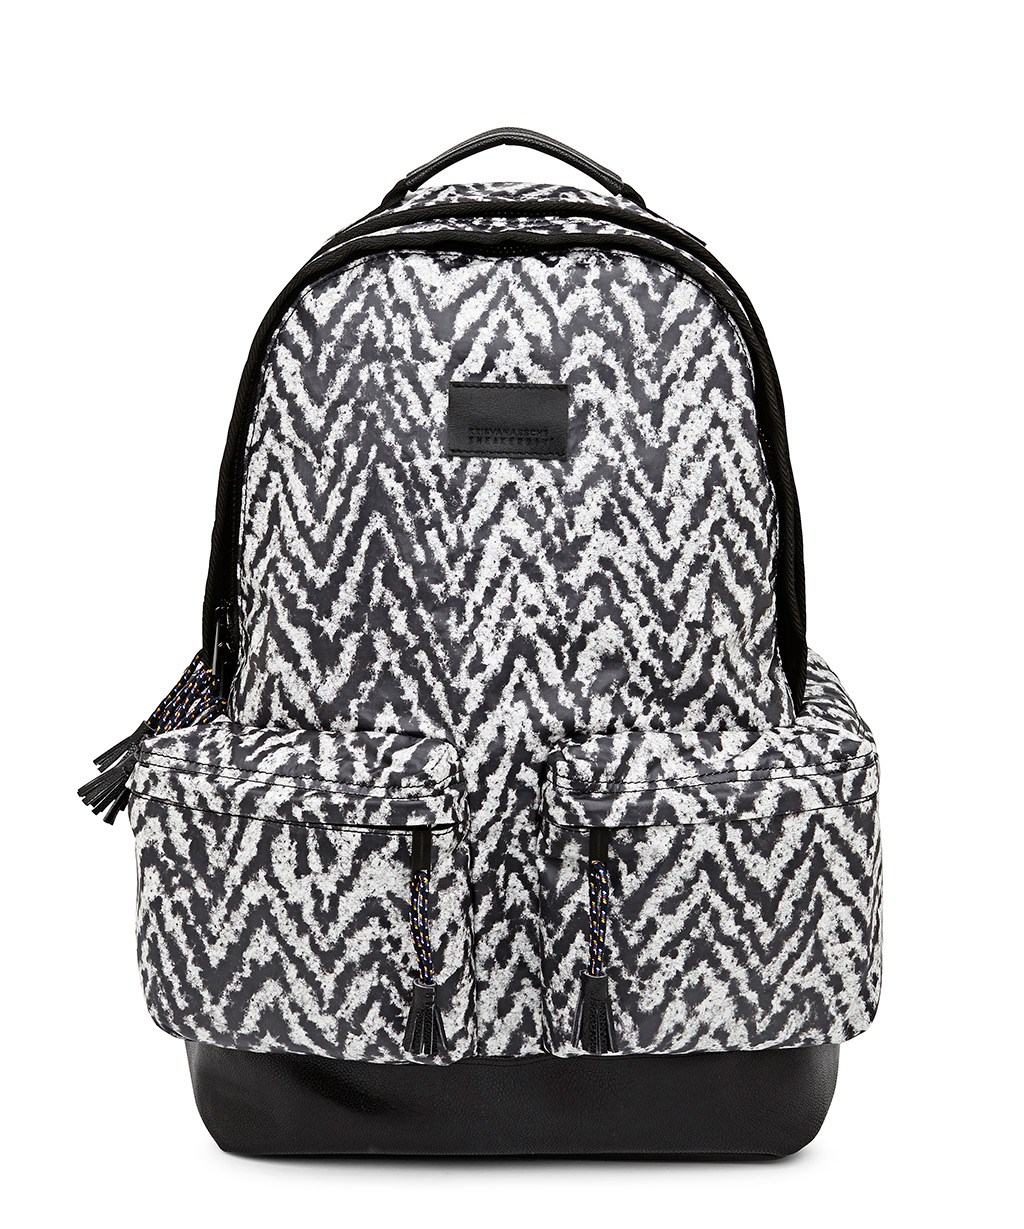 Sneakerboy® KRISVANASSCHE Fall Winter 2014 Backpack 1